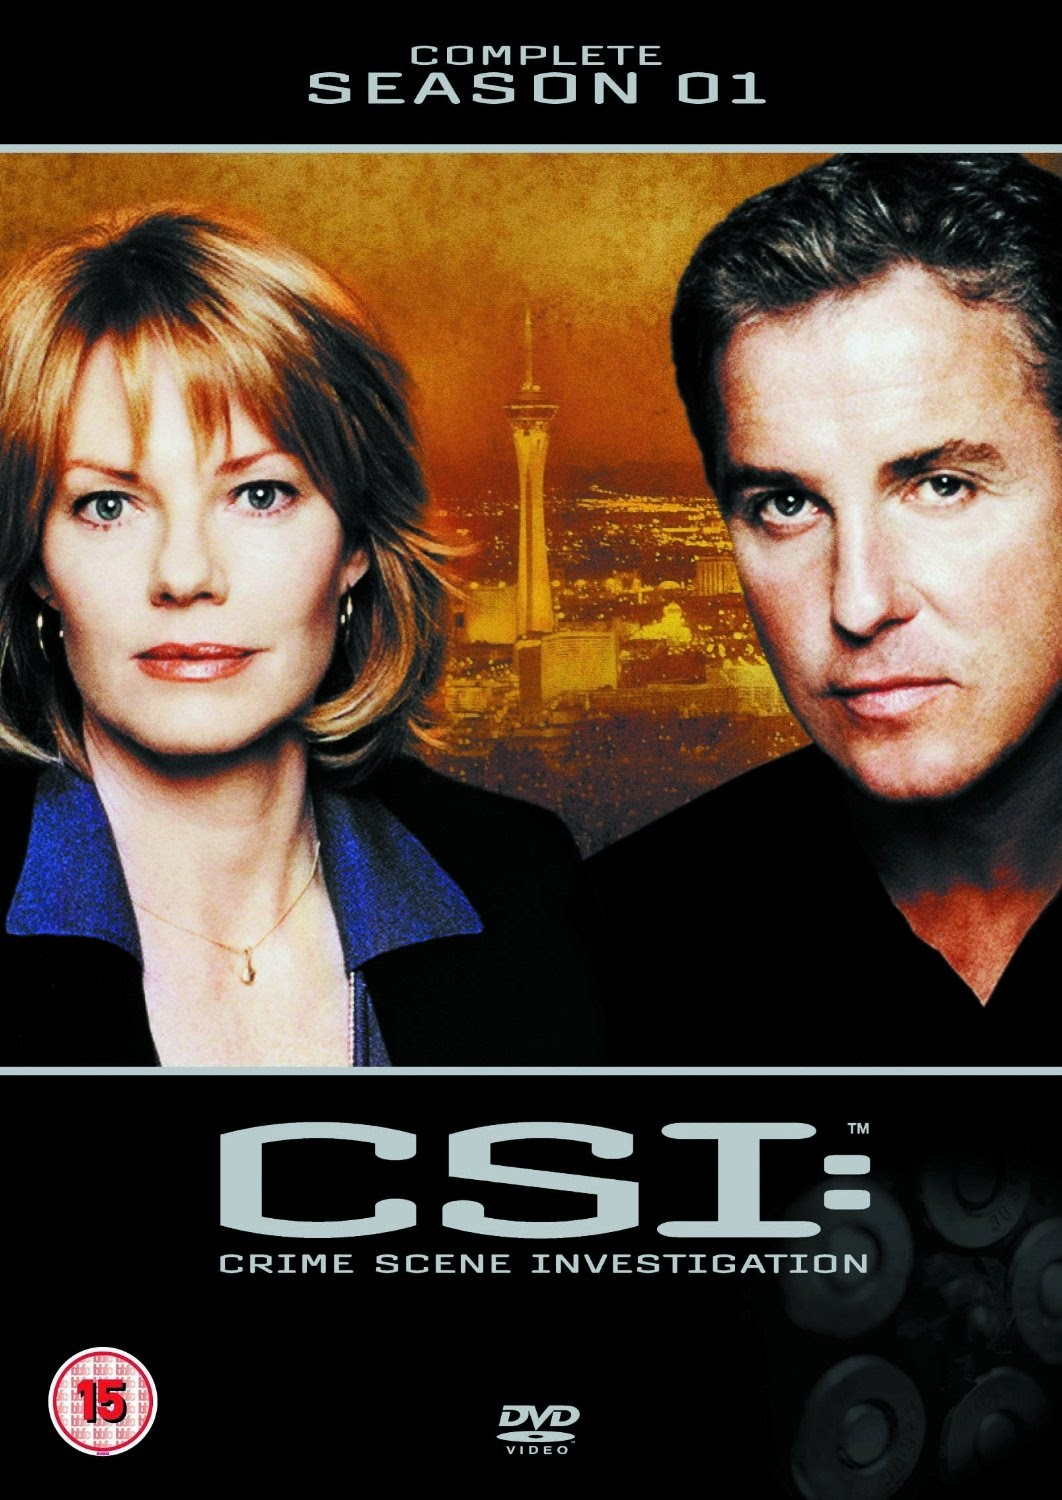 CSI: Las Vegas – Todas as Temporadas Dublado / Legendado (2005)